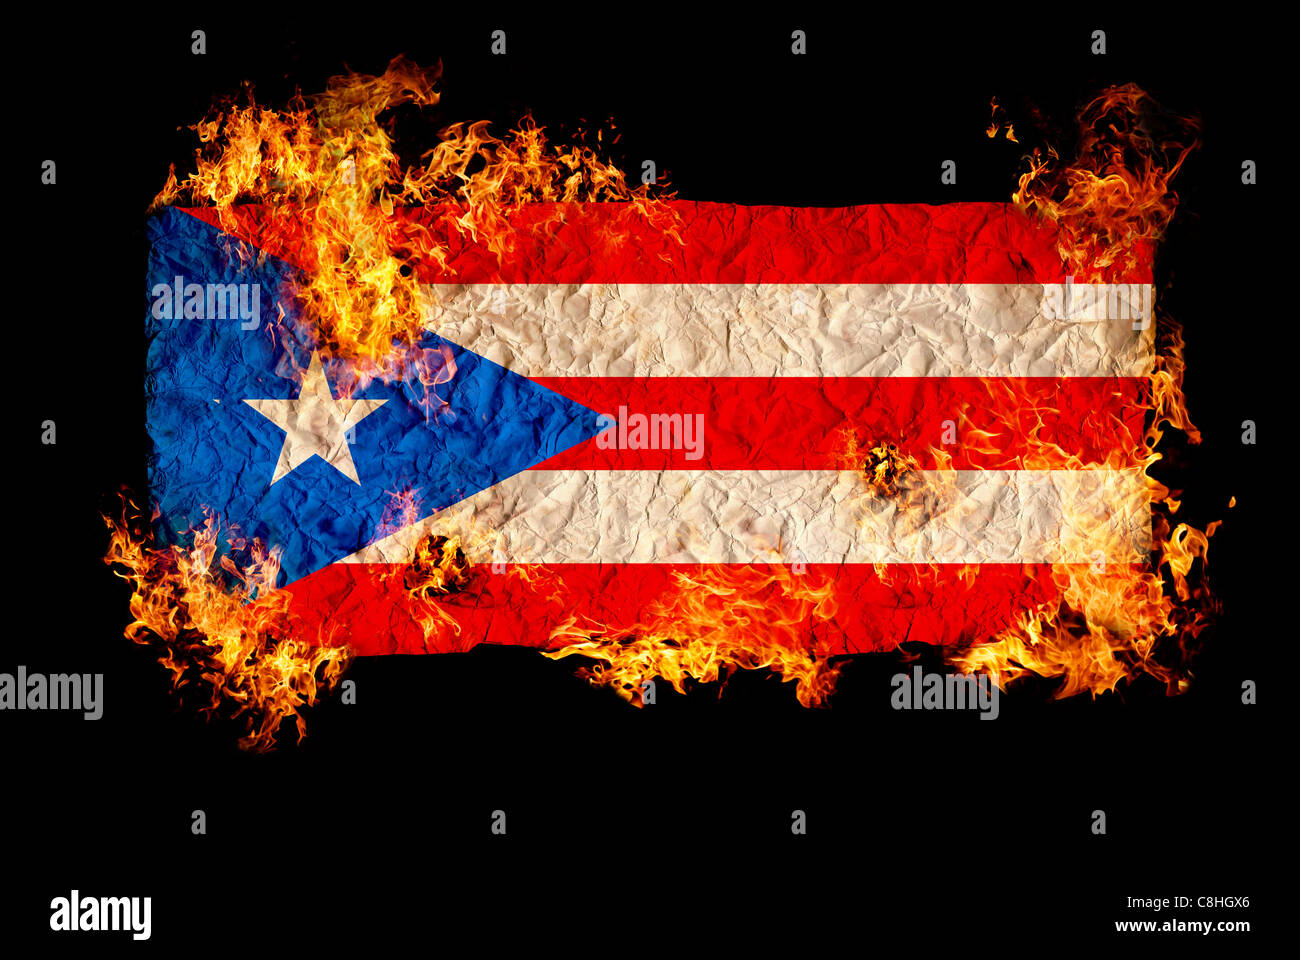 National symbols and flag of puerto rico stock photo royalty free national symbols and flag of puerto rico biocorpaavc Choice Image